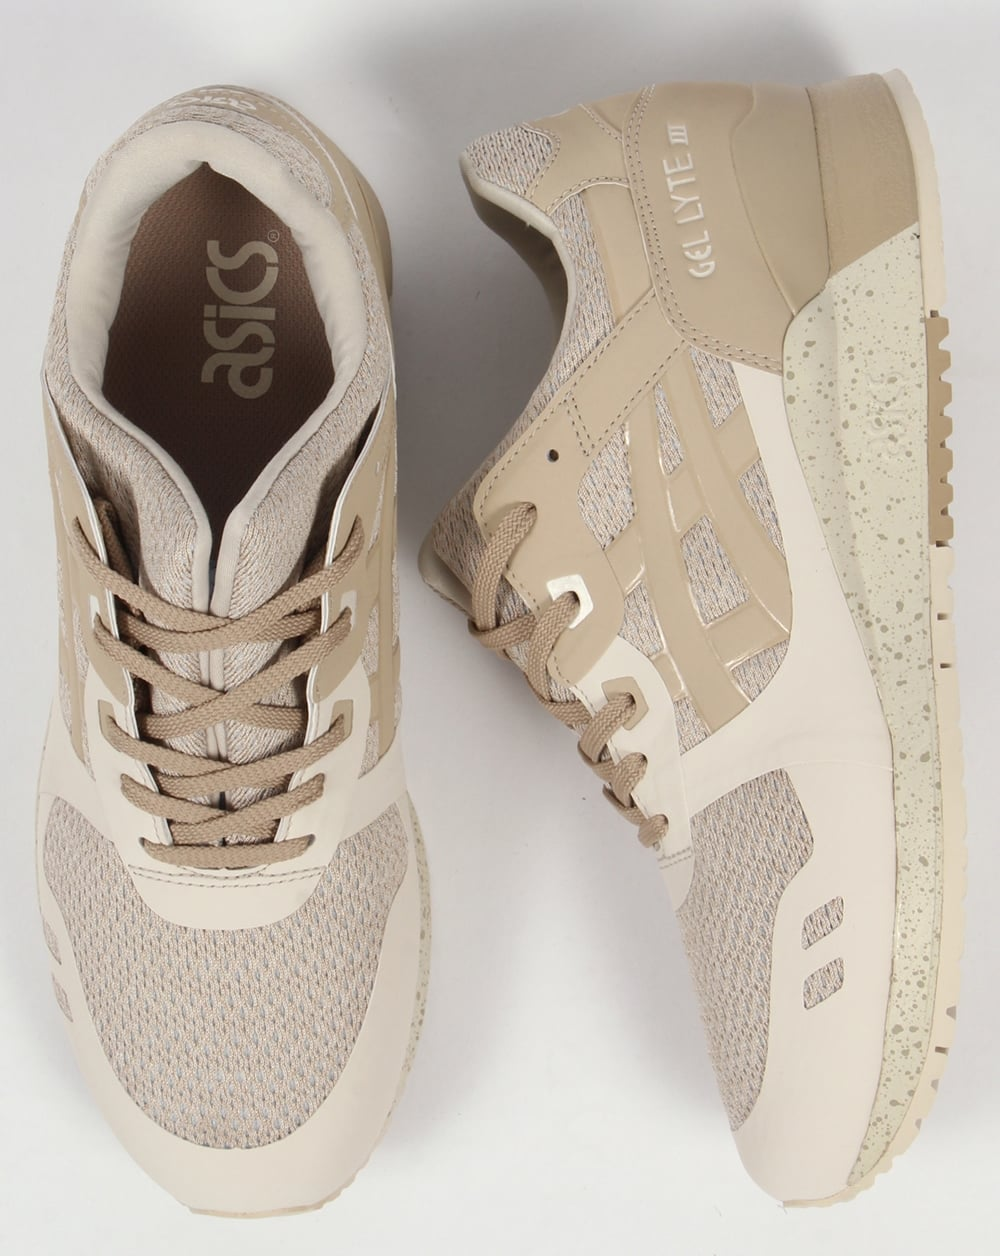 Ns Asics Gel Lights Chaussures Lyte 80 Umuvc Iii Birchlatte awtw7Sq